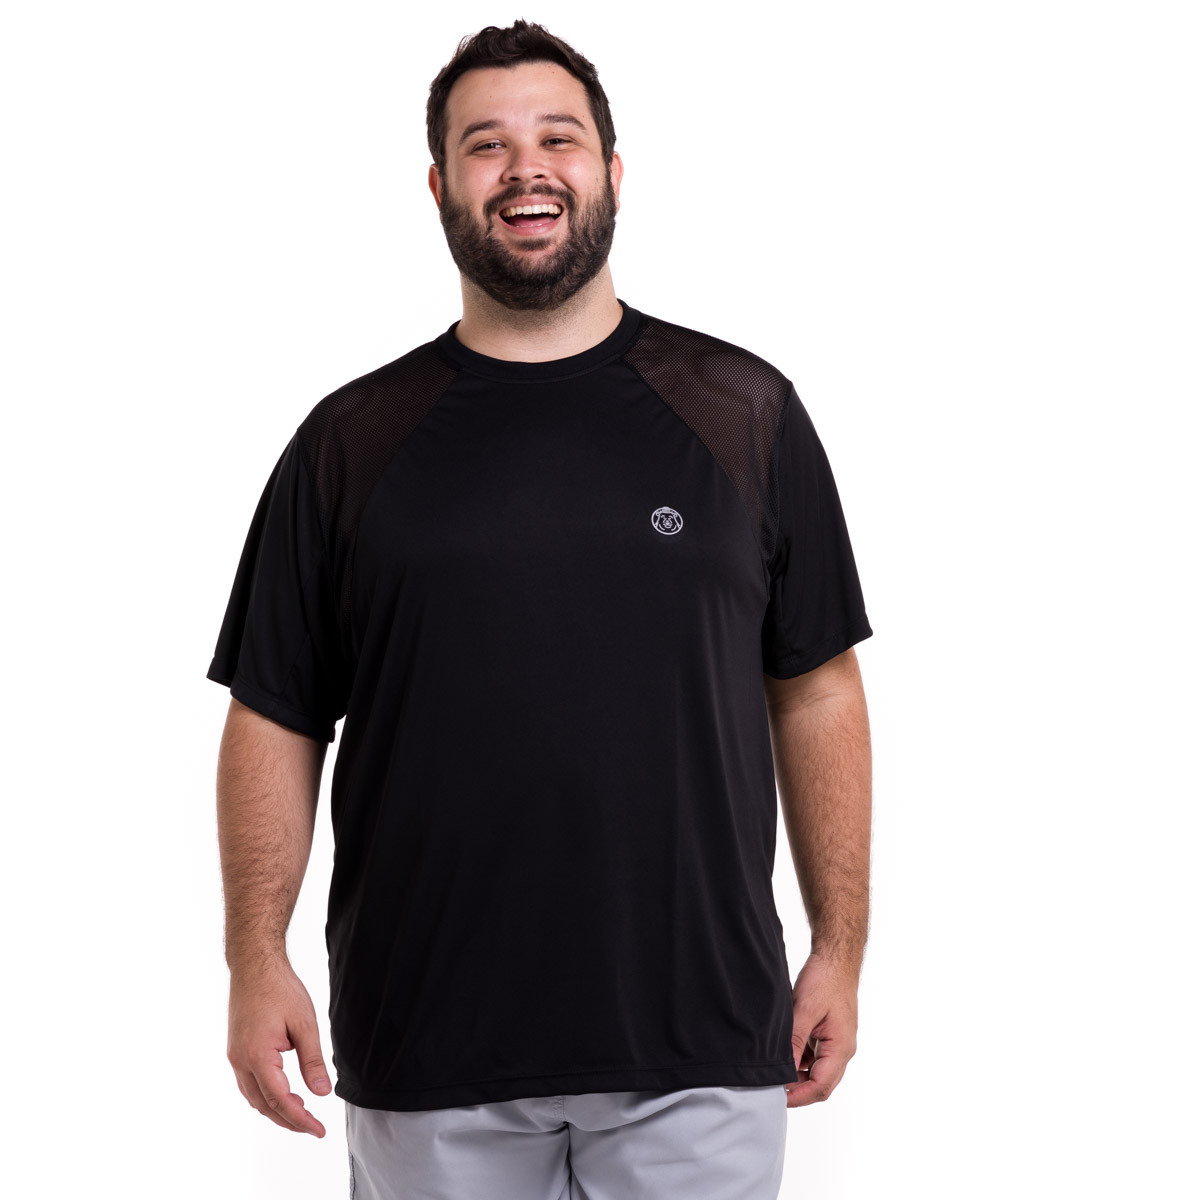 Camiseta Plus Size Masculina Dry Super